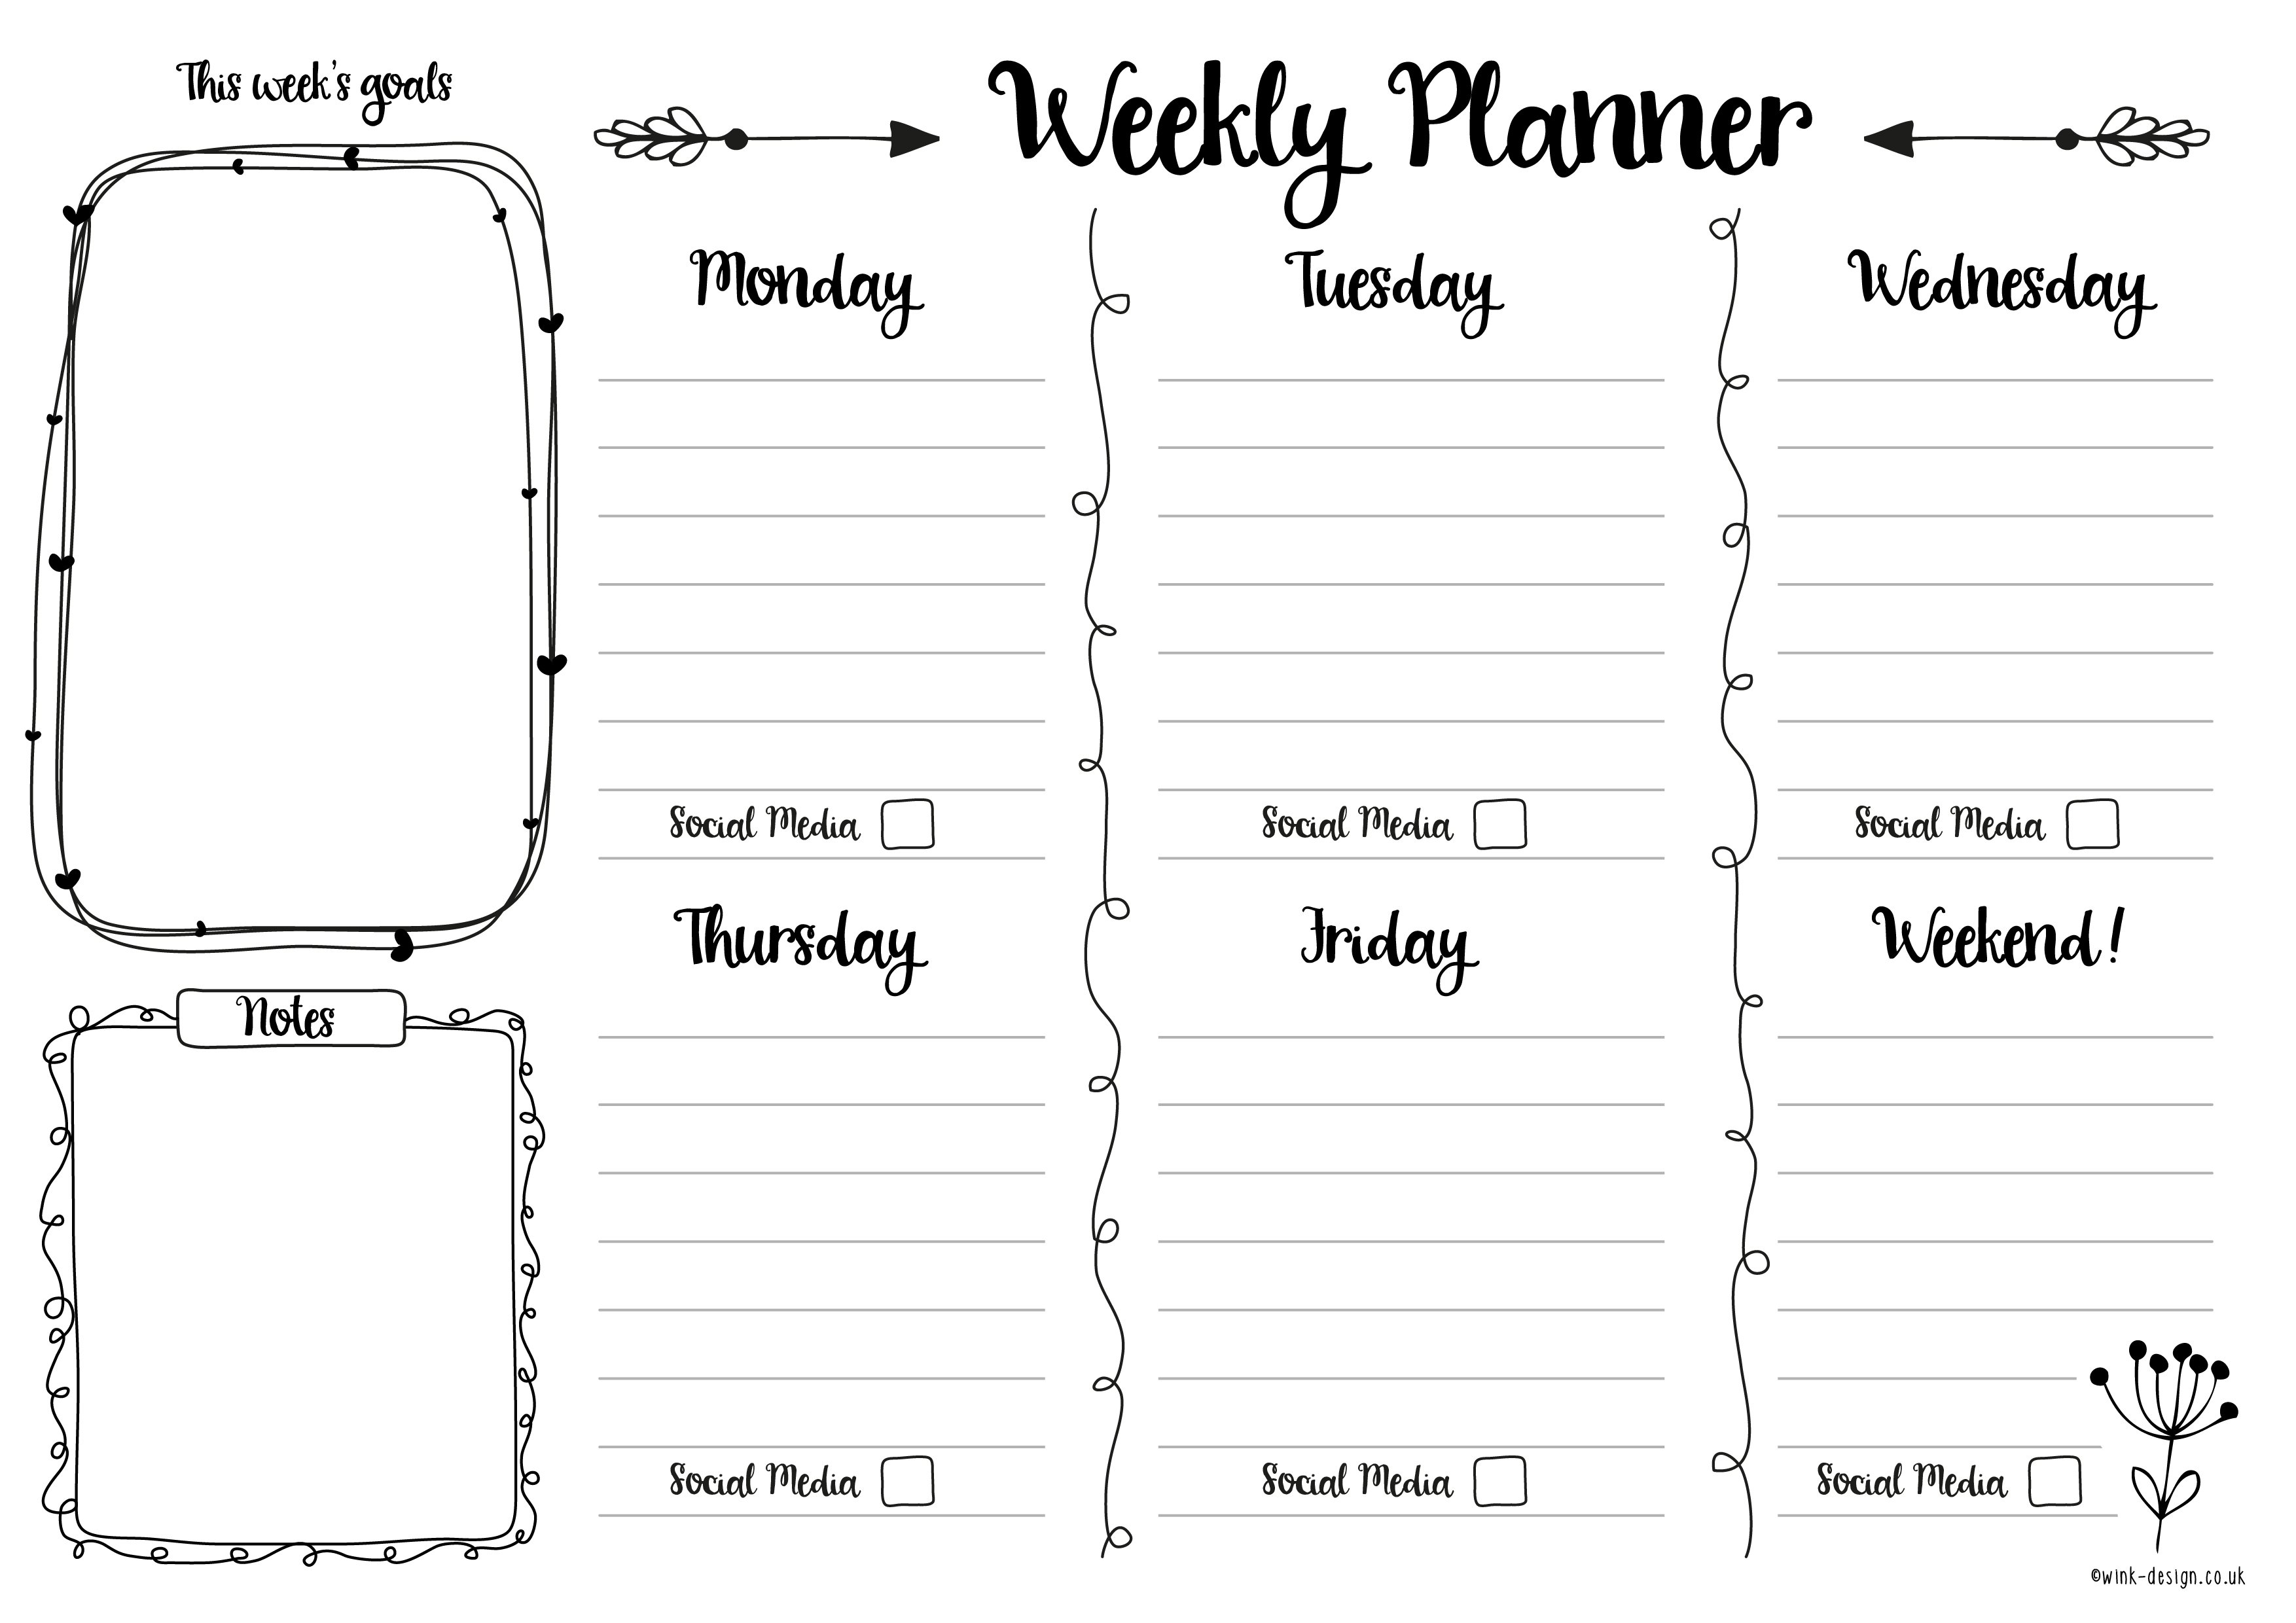 graphic about Free Weekly Planner Printable referred to as Free of charge Printable Weekly Planner - Wink Style